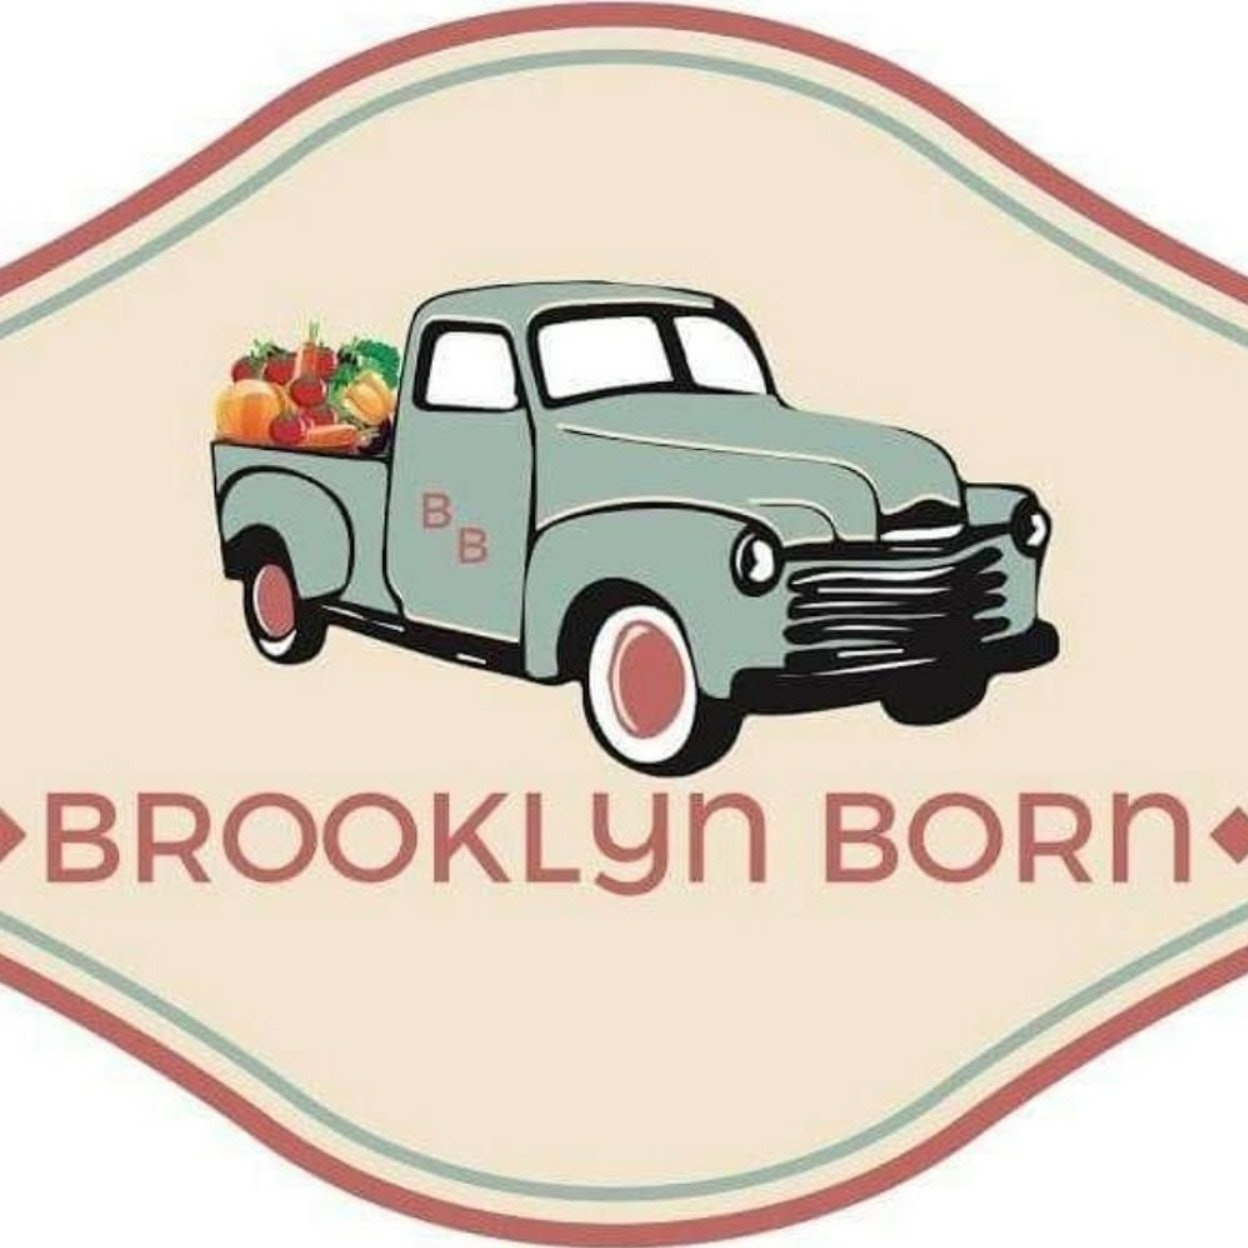 BEYOND VEGAN: What Happened To Brooklyn Born Mini Market?